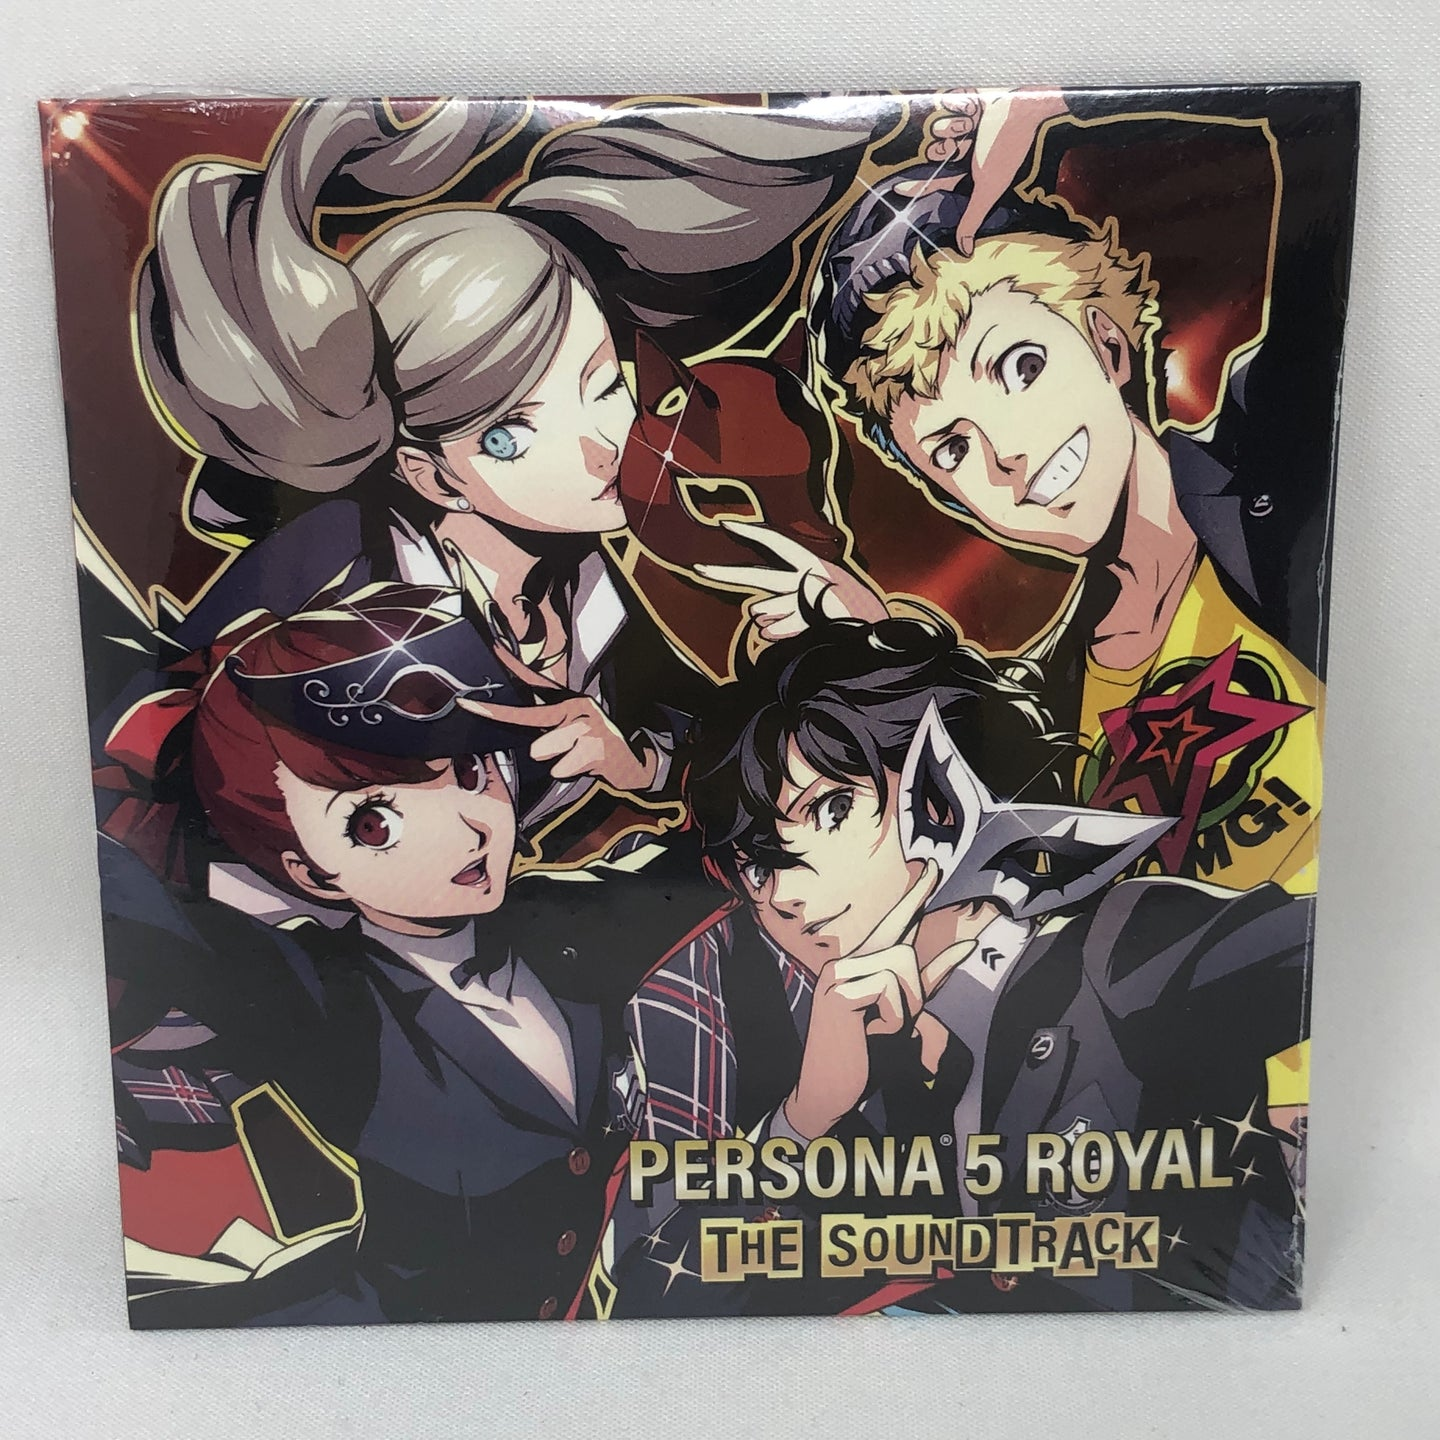 Persona 5 Royal - The Soundtrack Audio CD - BRAND NEW! Phantom Thieves Version